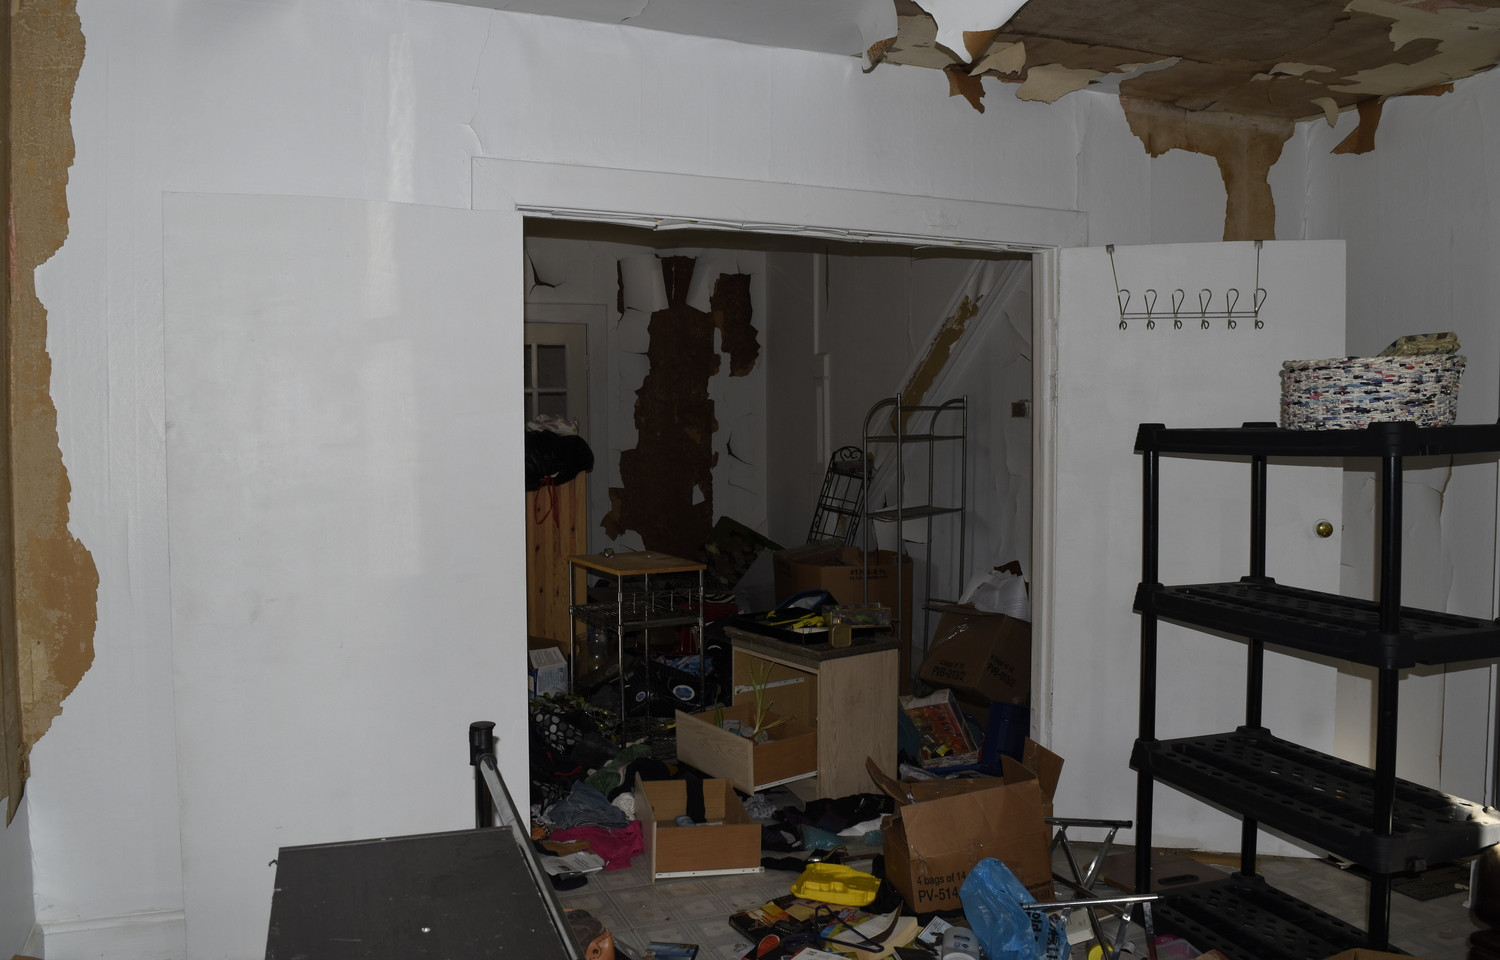 08 Apartment 1 Living Room.jpg